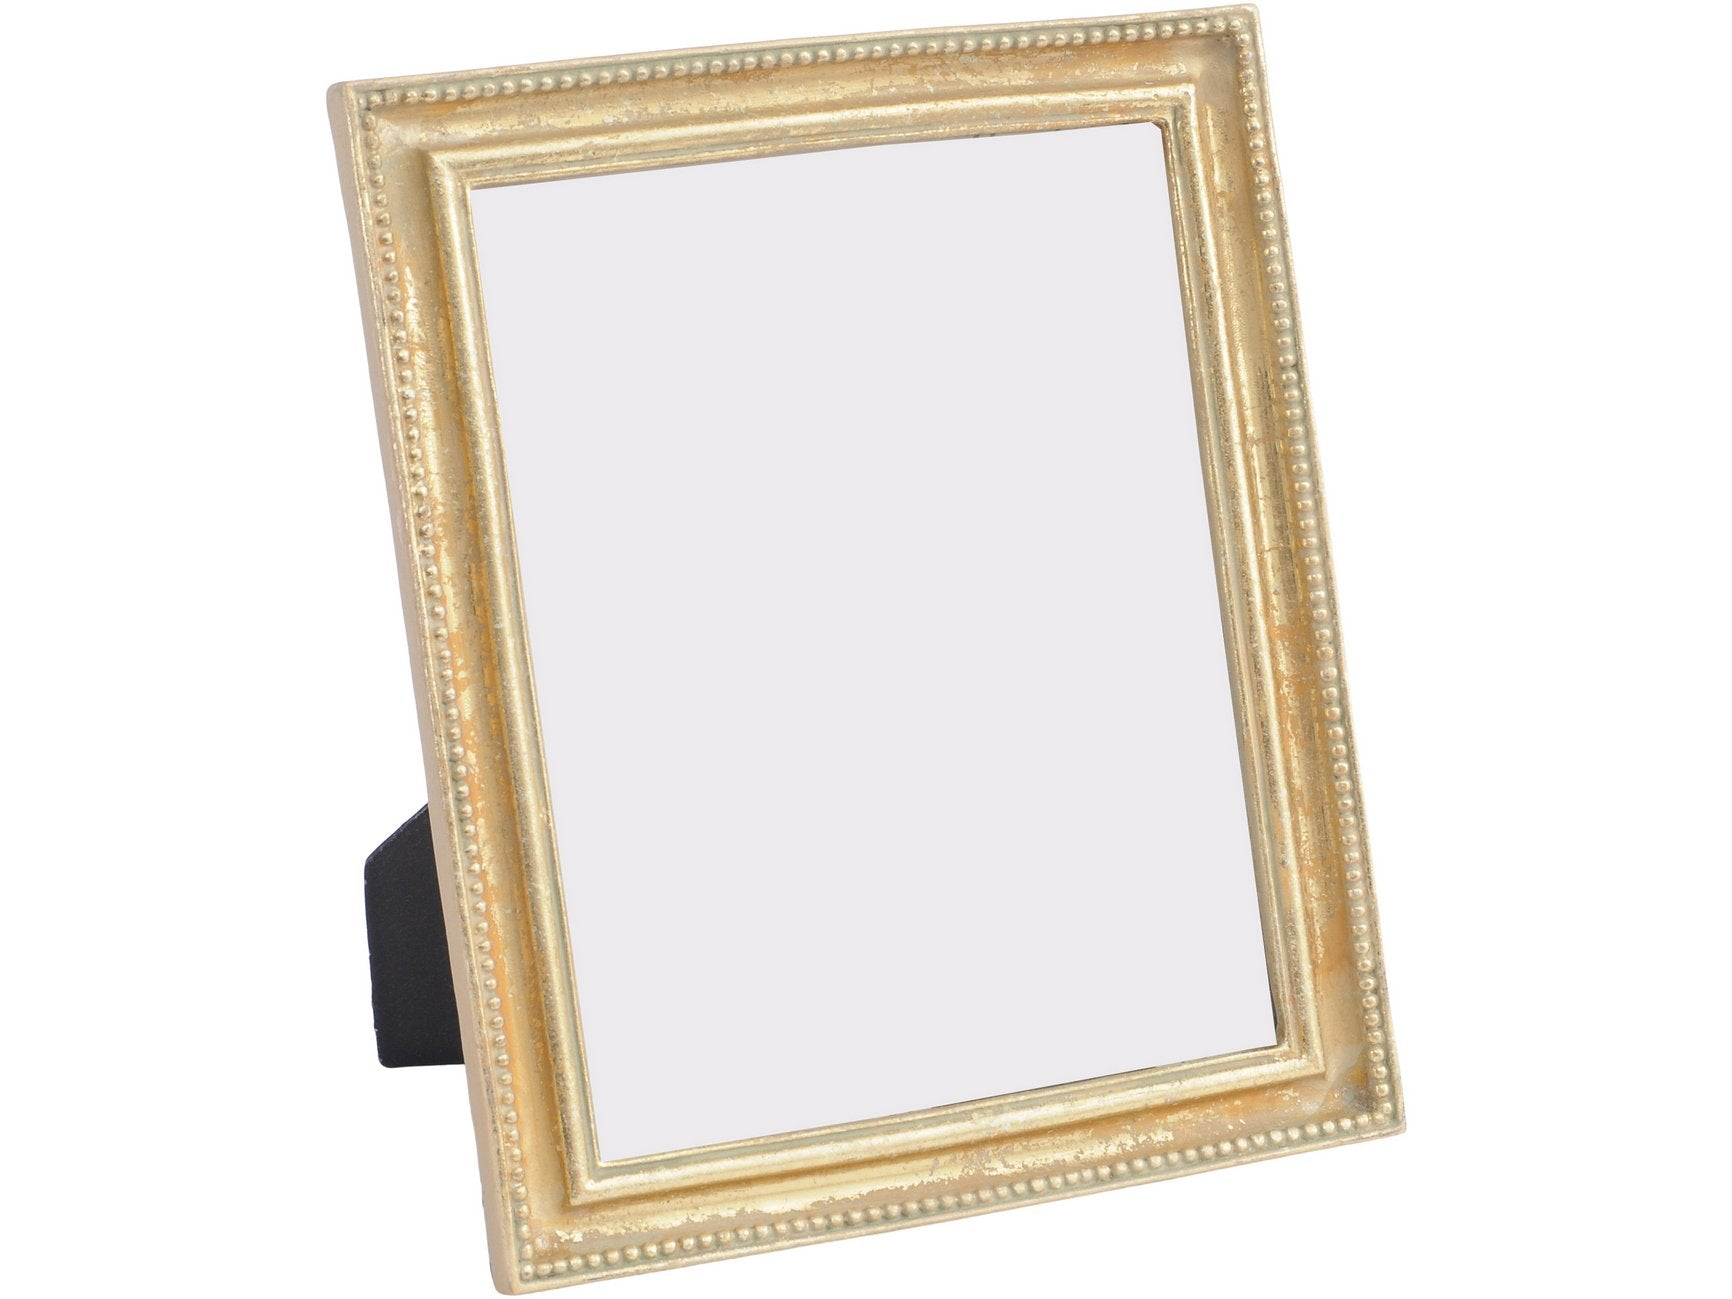 Libra Karis 6x8 Inch Gold Beaded Resin Photo Frame | Outlet